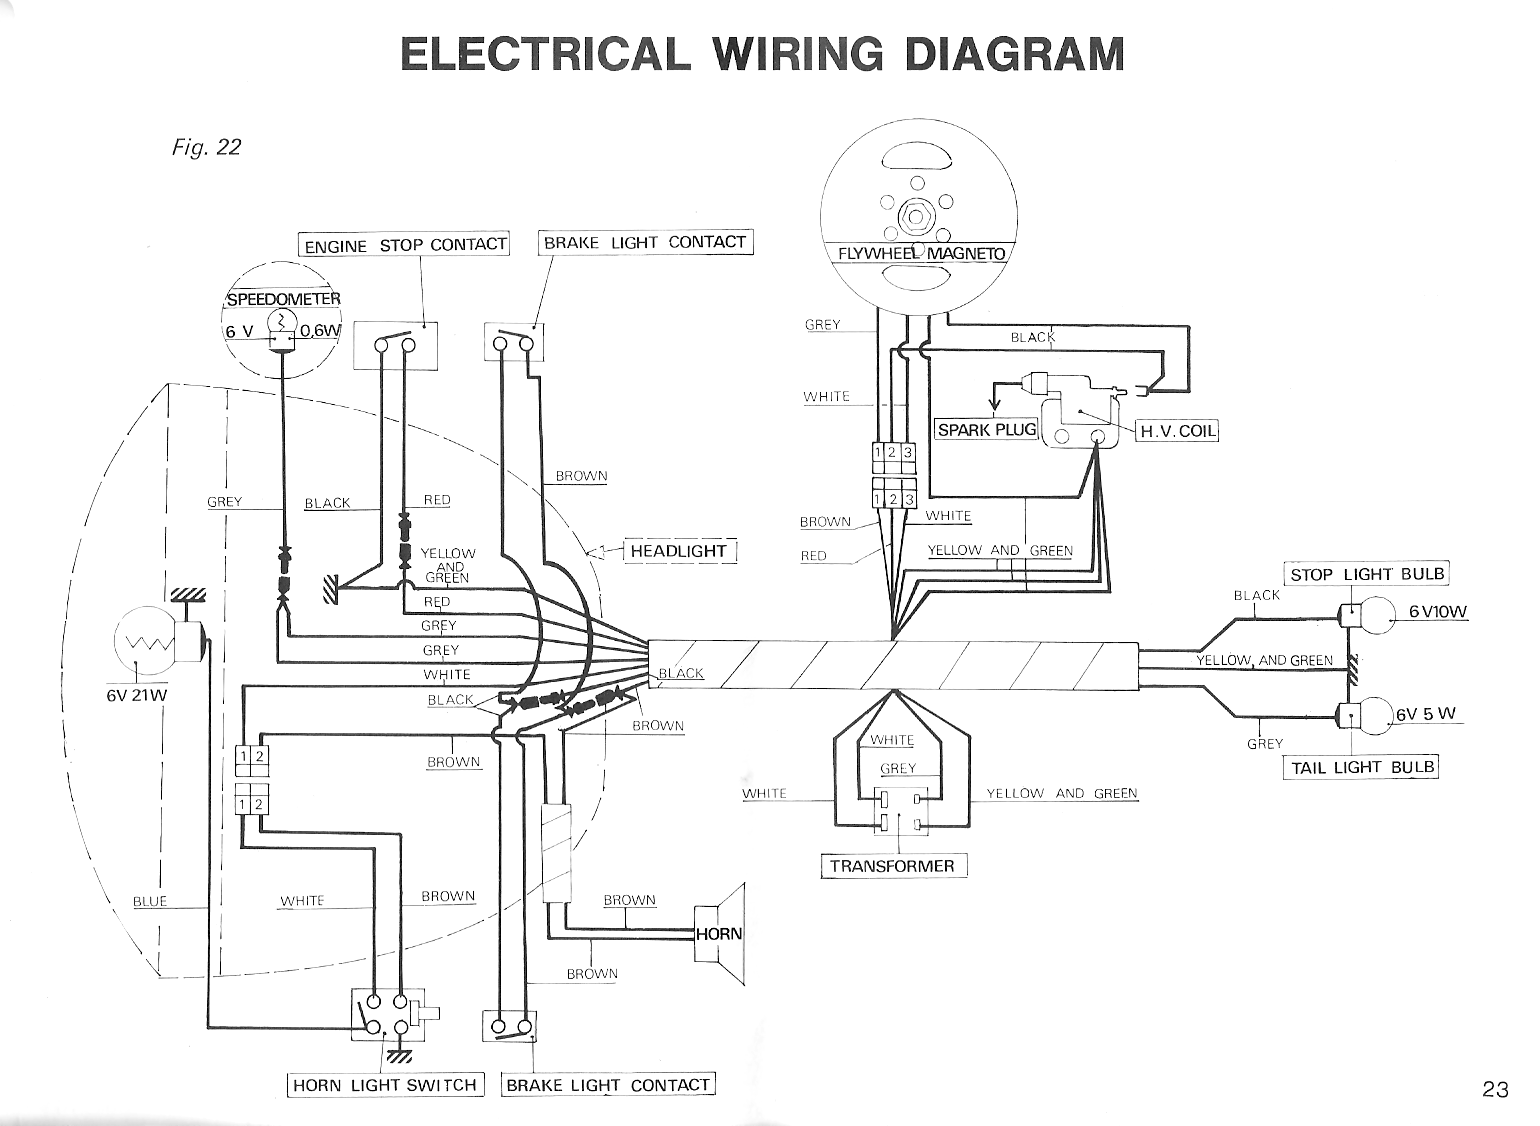 Peugeot_102_wiring_1  Wire Tail Light Wiring Diagram on wiring 2wire tail lights, led stop turn tail lights, cargo trailer wiring diagram tail lights, wire size for led lights, wiring three wire 12 volt leds, wiring diagram for tail lights 2004 chevy 2500, wiring led light christmas, three volt tail lights, 4 wire diagram for a string of lights,